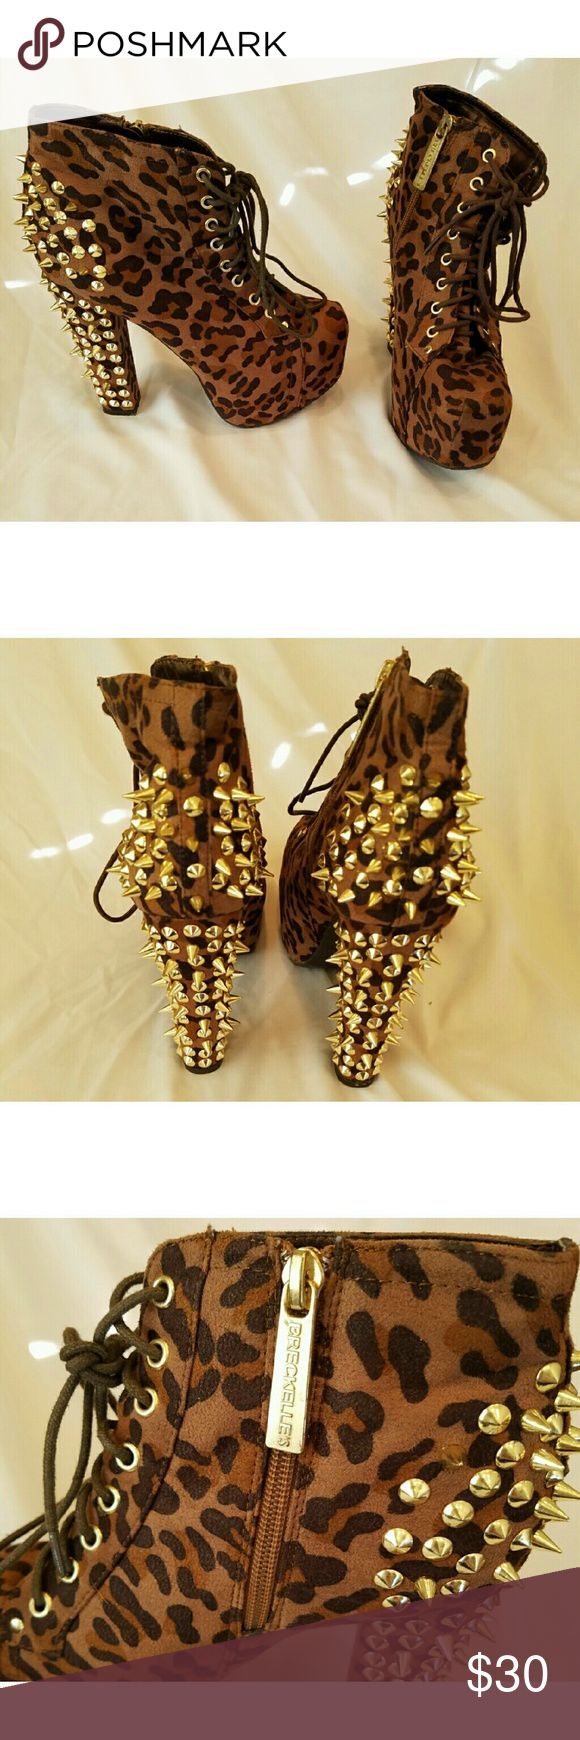 Studded cheetah heels Gold spiked cheetah heels. Worn once in perfect condition all the studs are there. Size 7 with a 5 inch heel. Breckelles Shoes